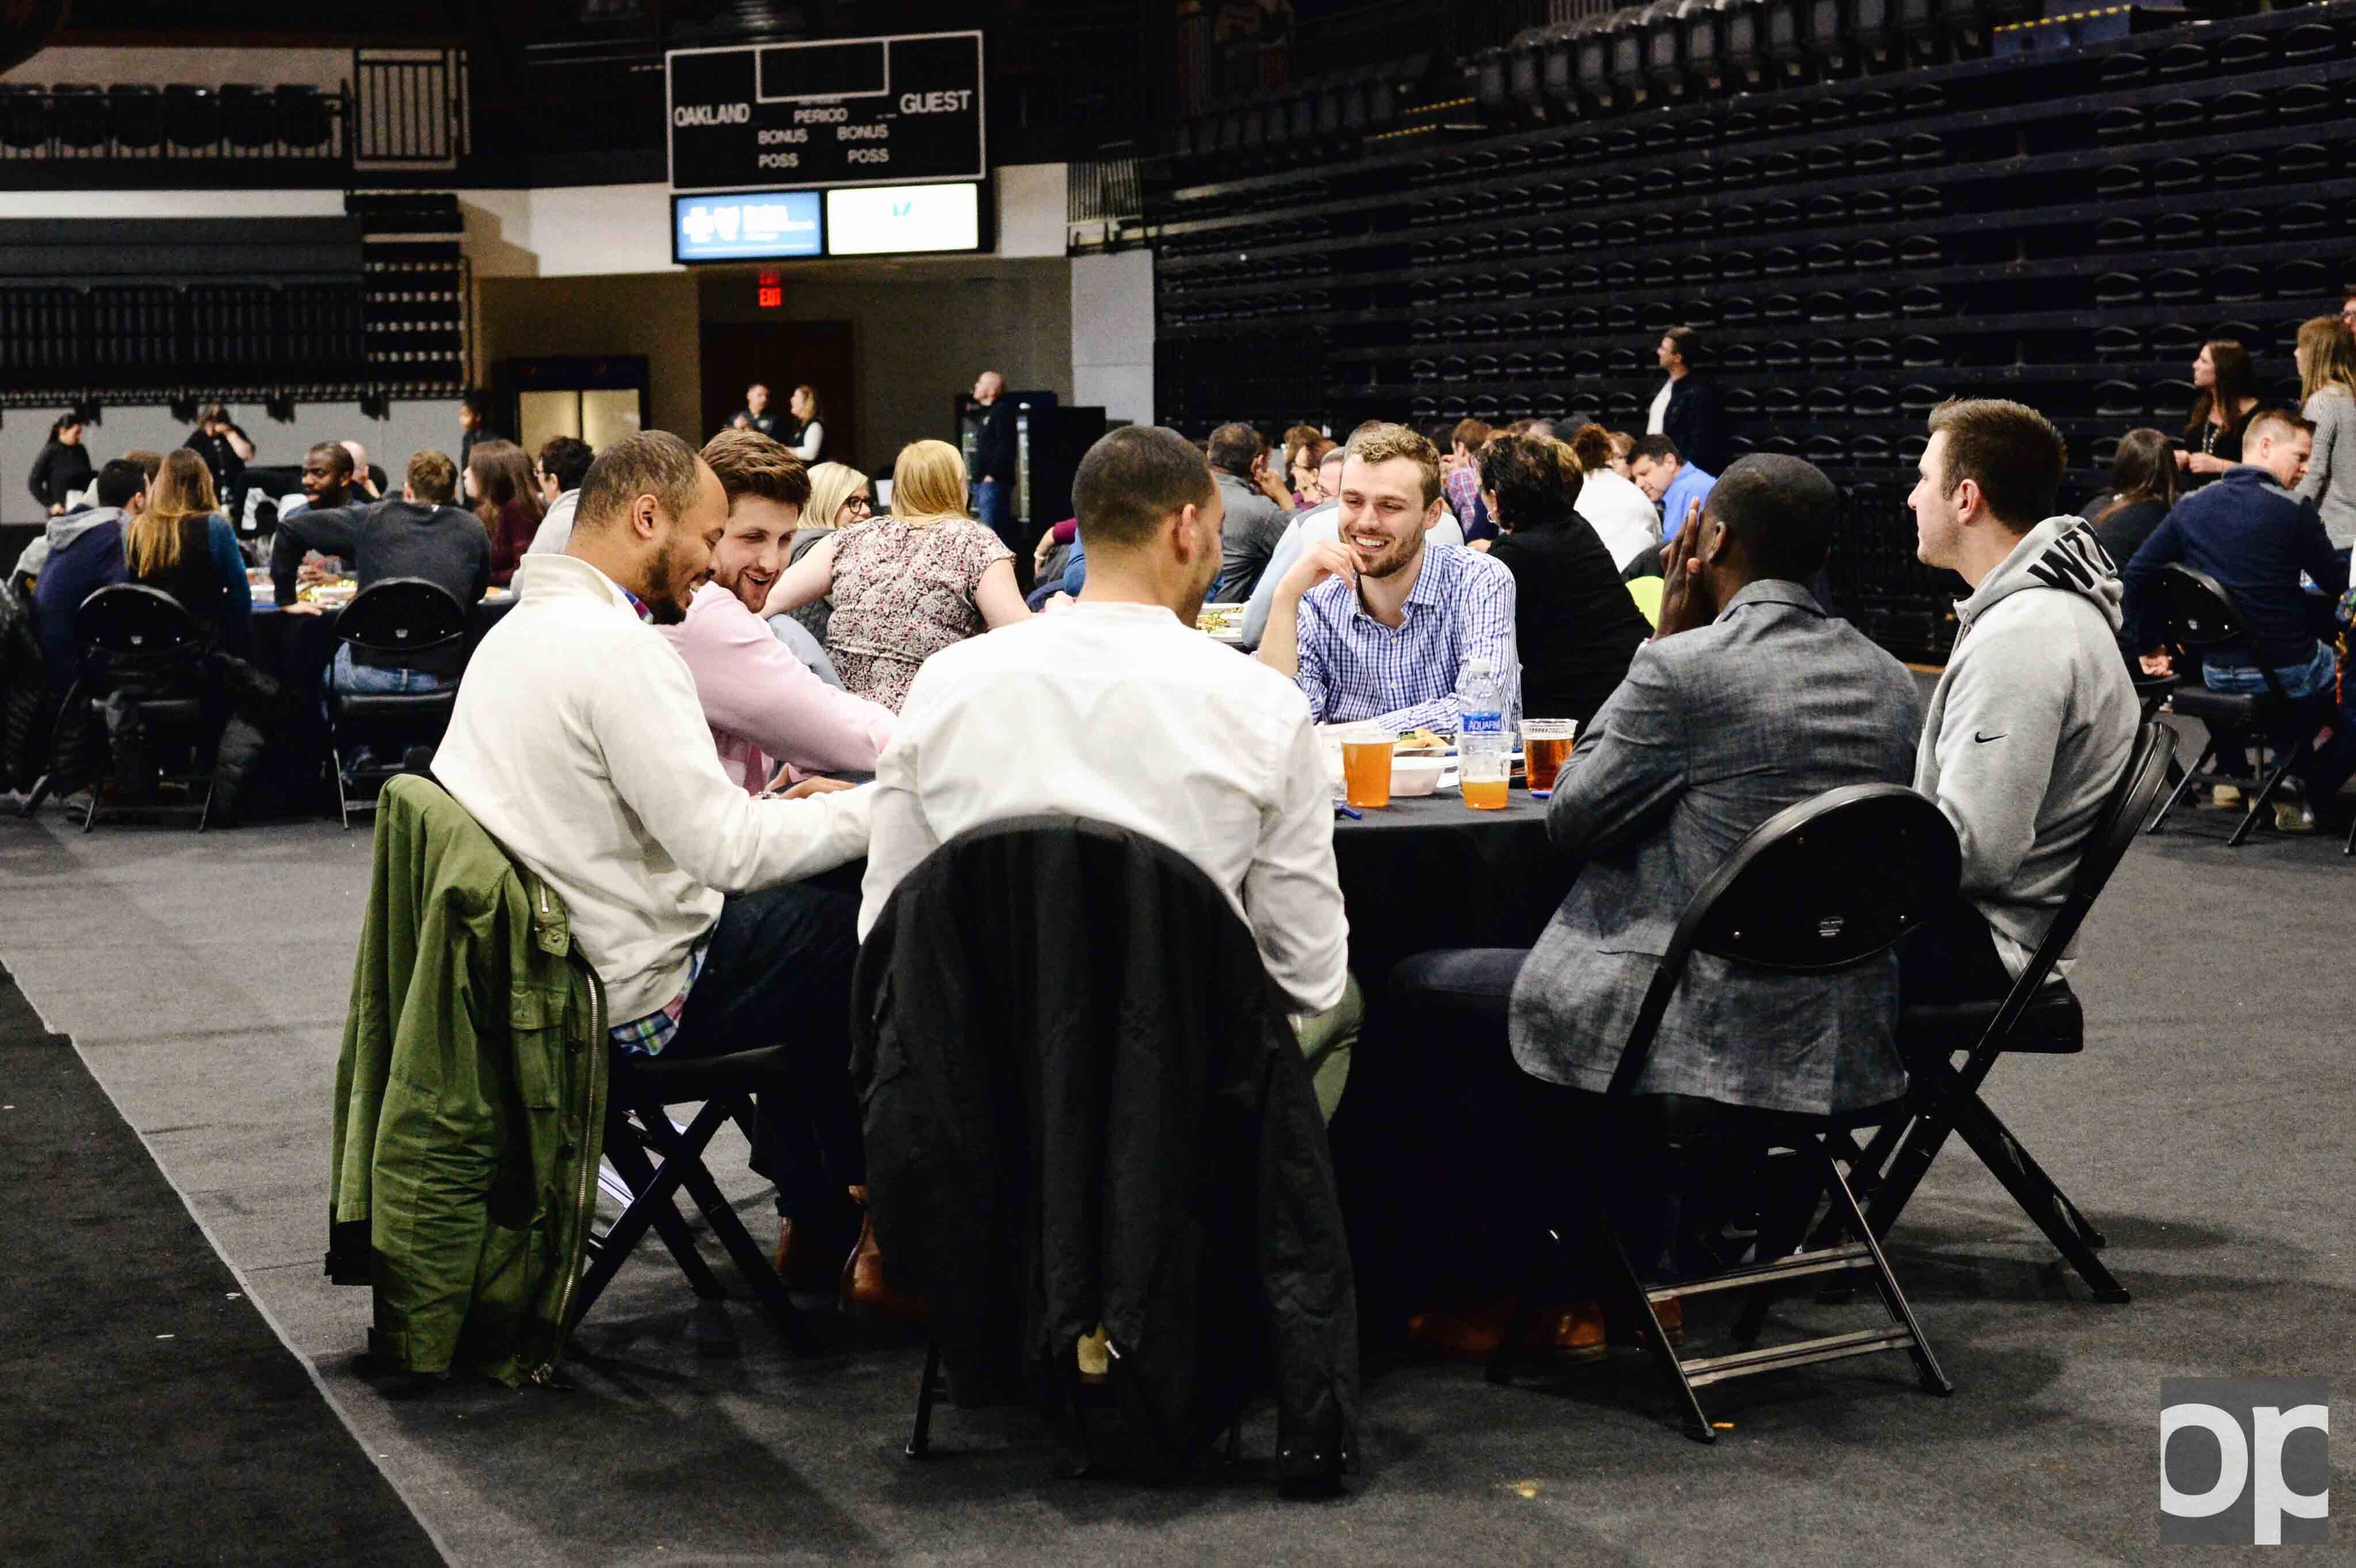 Oakland University Athletics hosted its first-ever Trivia Night on Thursday, March 9 at the O'rena with 19 teams competing against each other.